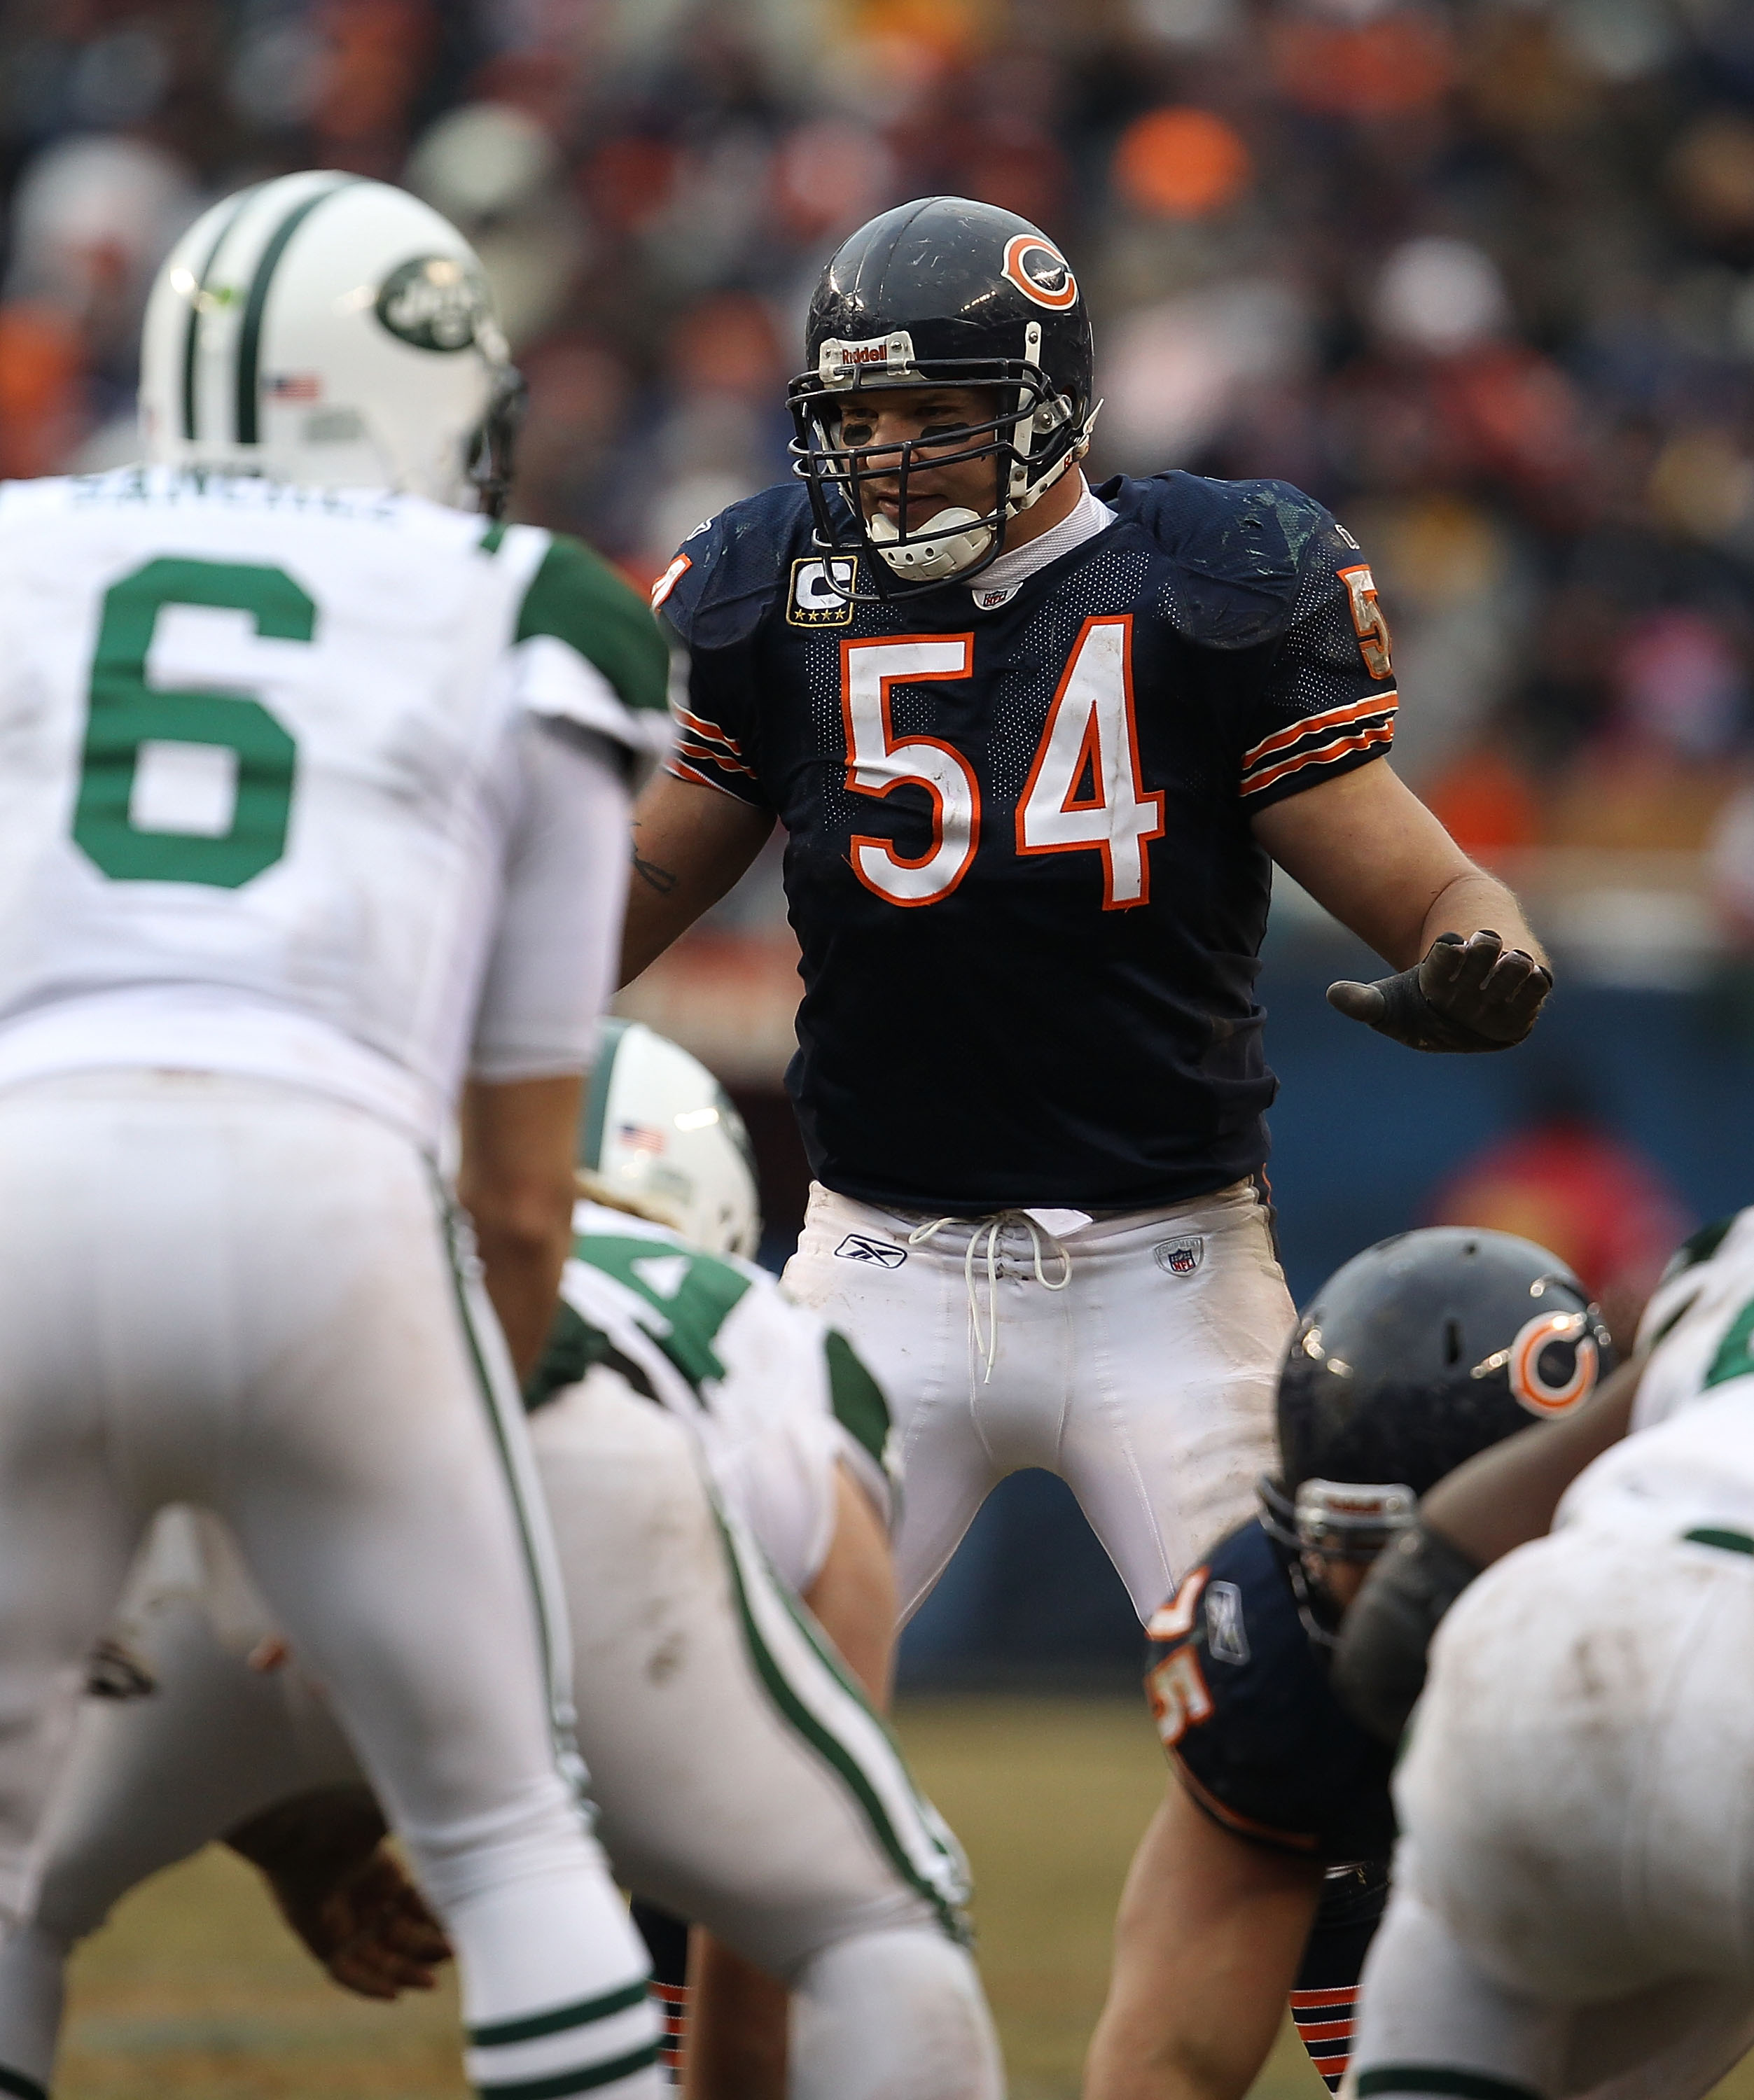 CHICAGO, IL - DECEMBER 26: Brian Urlacher #54 of the Chicago Bears awaits the start of play as Mark Sanchez #6 of the New York Jets calls offensive signals at Soldier Field on December 26, 2010 in Chicago, Illinois. The Bears defeated the Jets 38-34.  (Ph